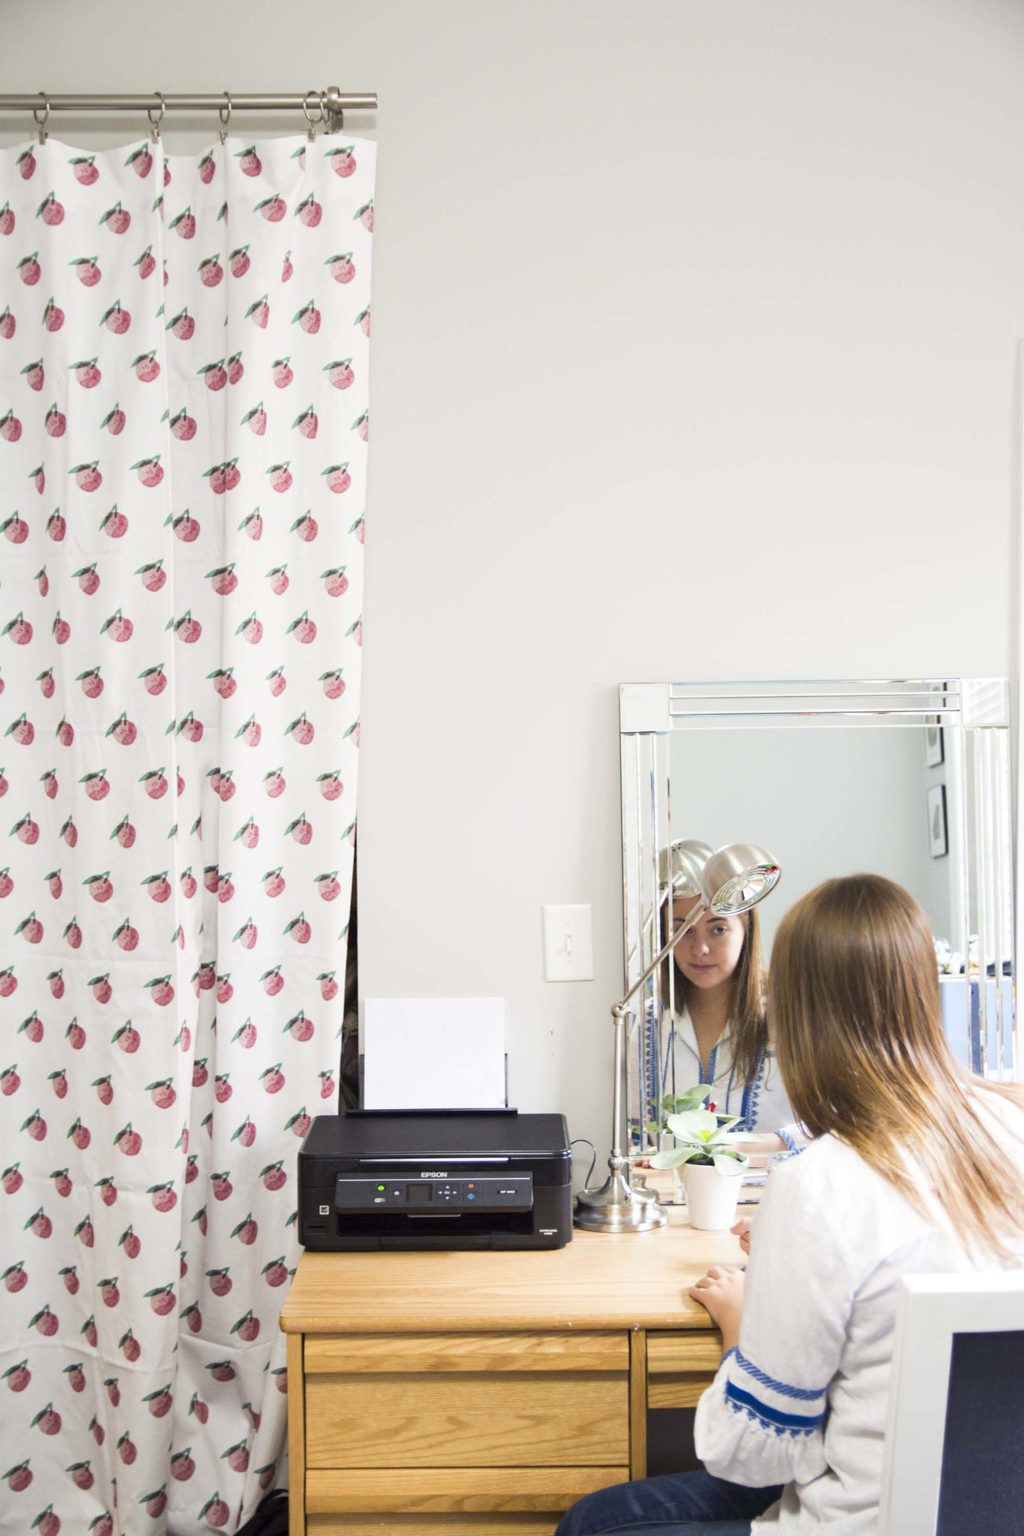 Curtains with pink peach fruit pattern from Minted on Thou Swell @thouswellblog